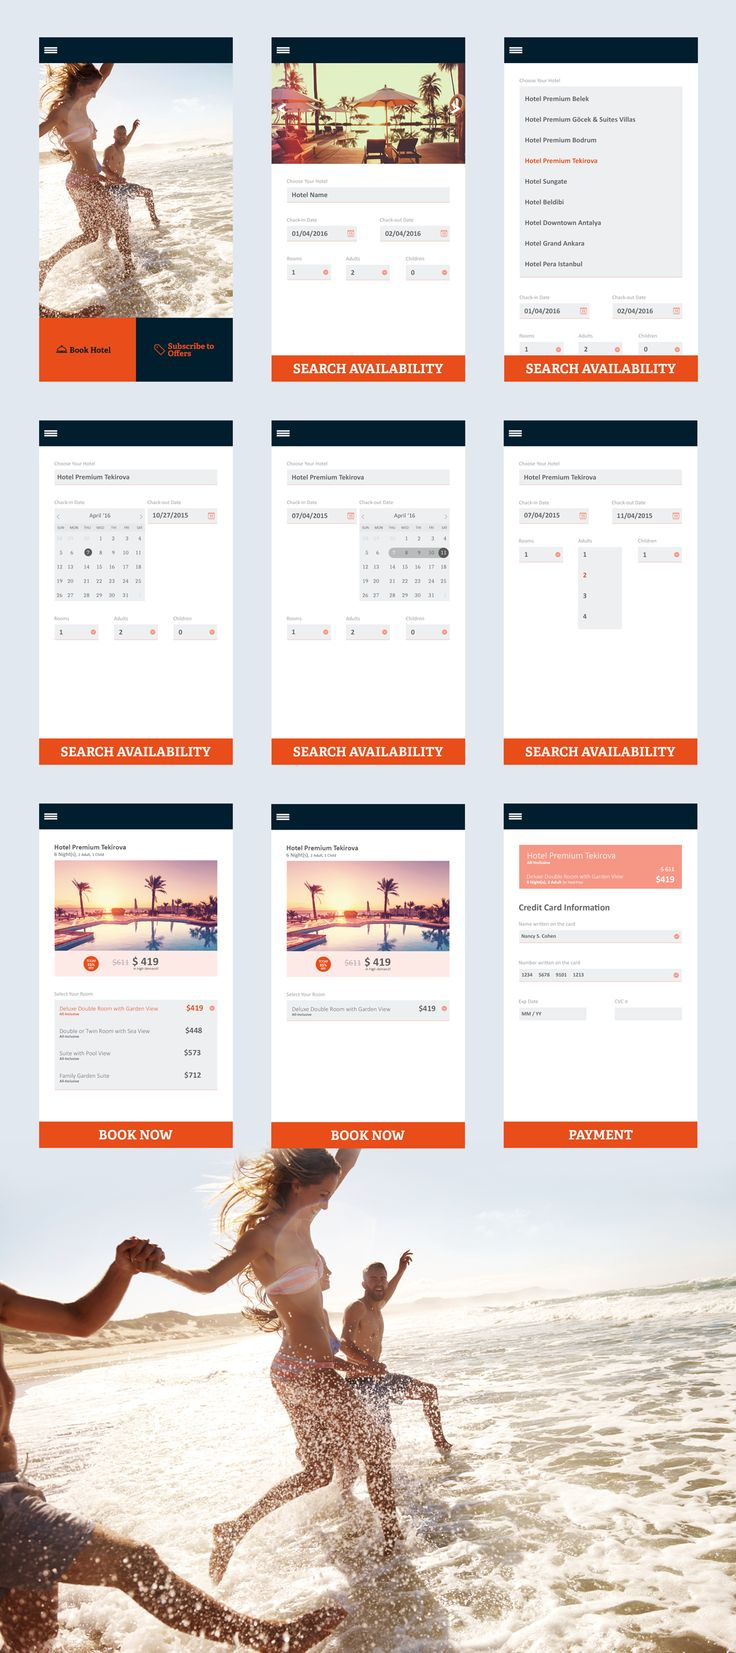 Hotel Reservation App Design #Mobile #Design #Flat #Travel #Booking #Payment #Calender #SearchBox